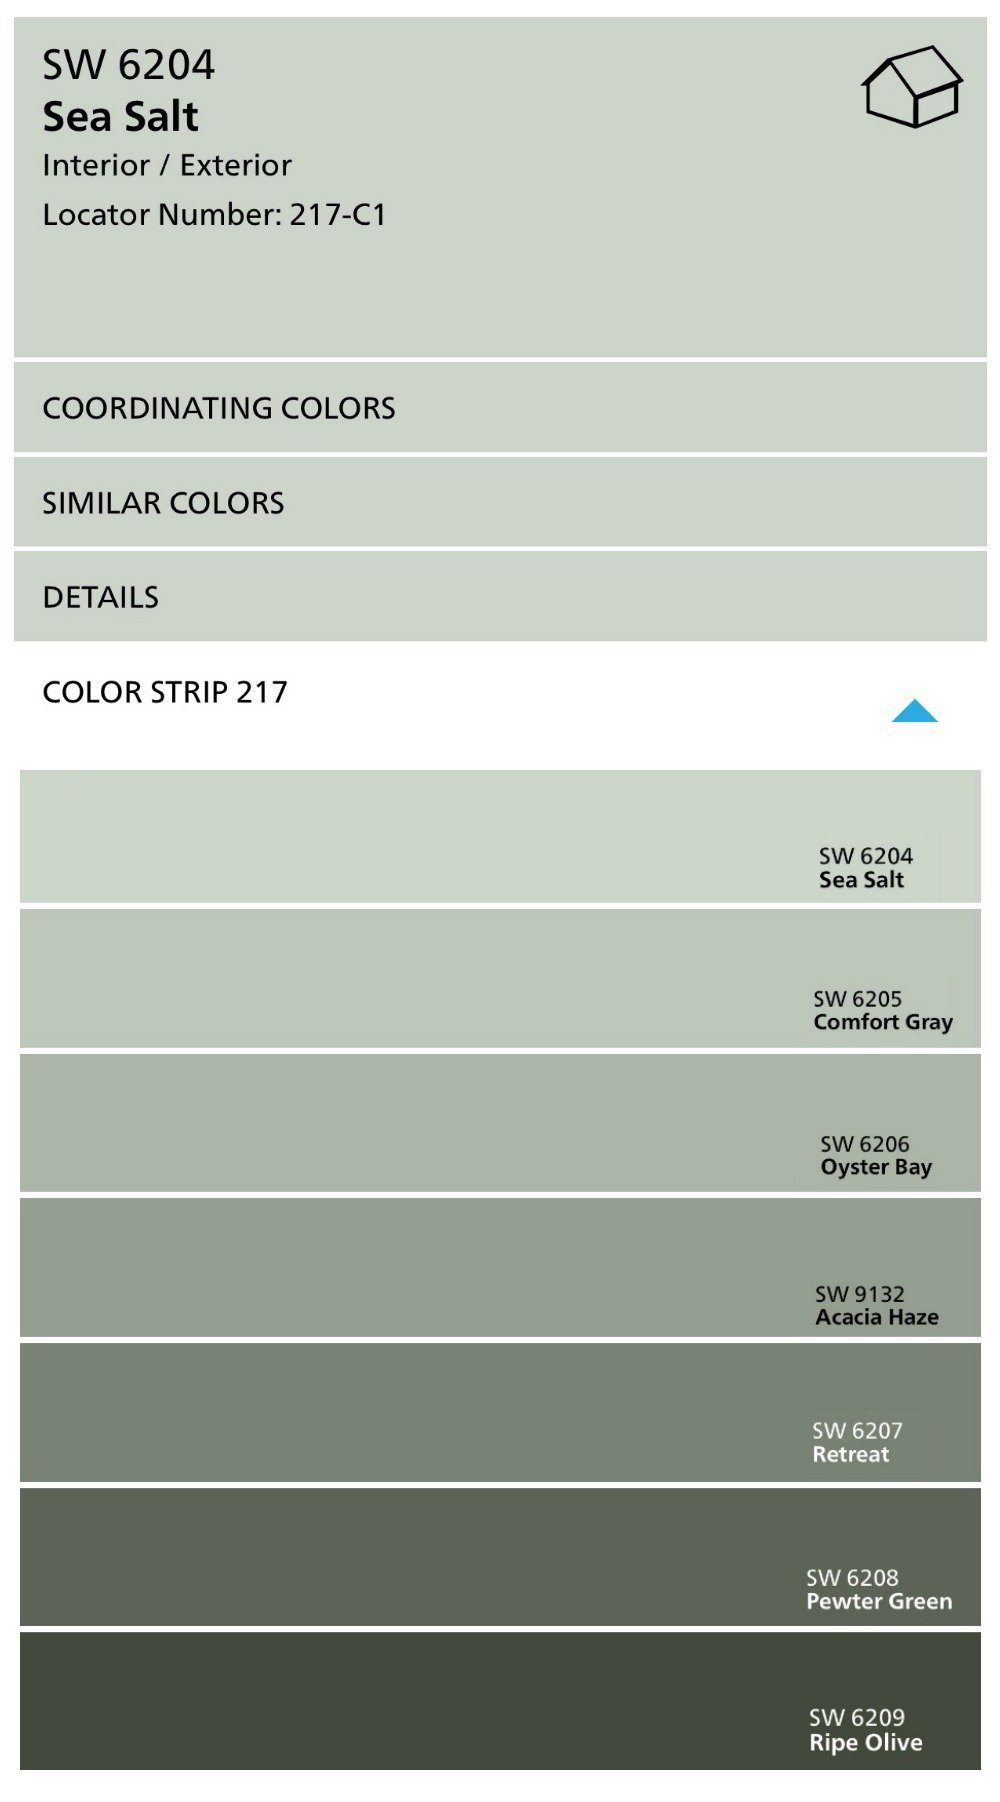 Sherwin Williams Color Strip with Sea Salt and Comfort Gray